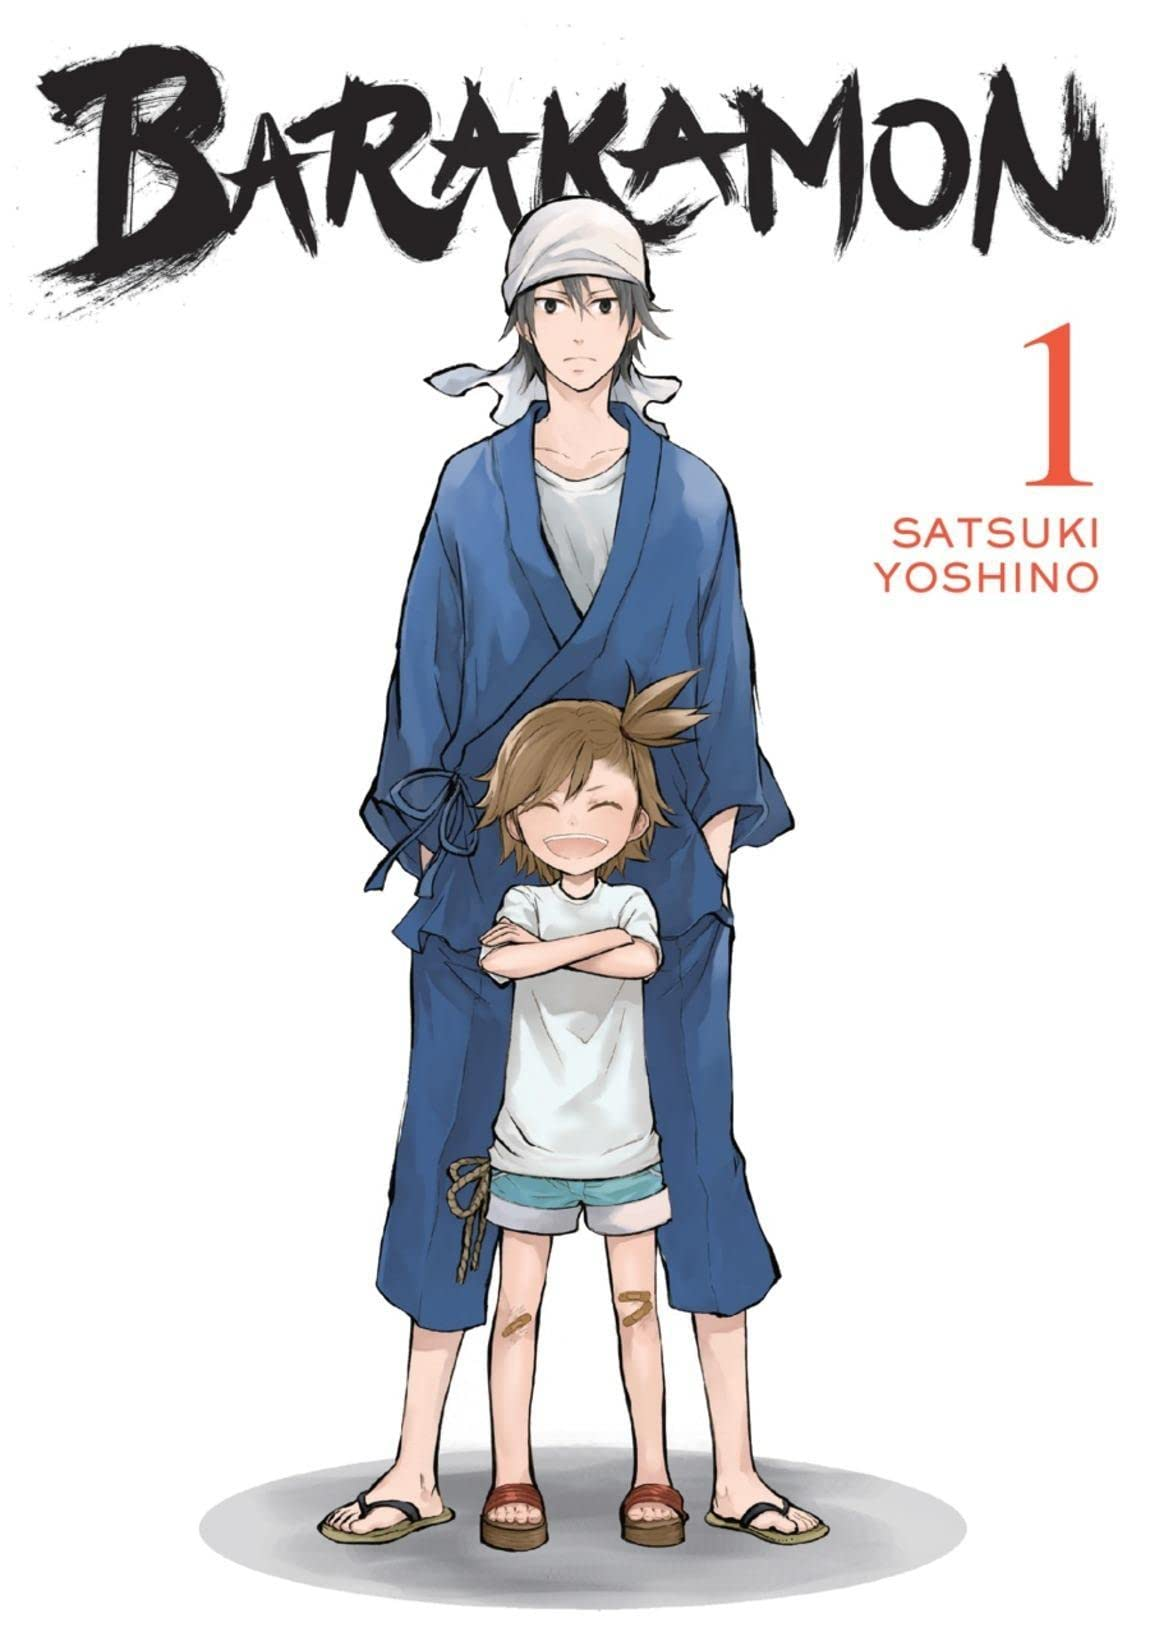 Barakamon Vol. 1